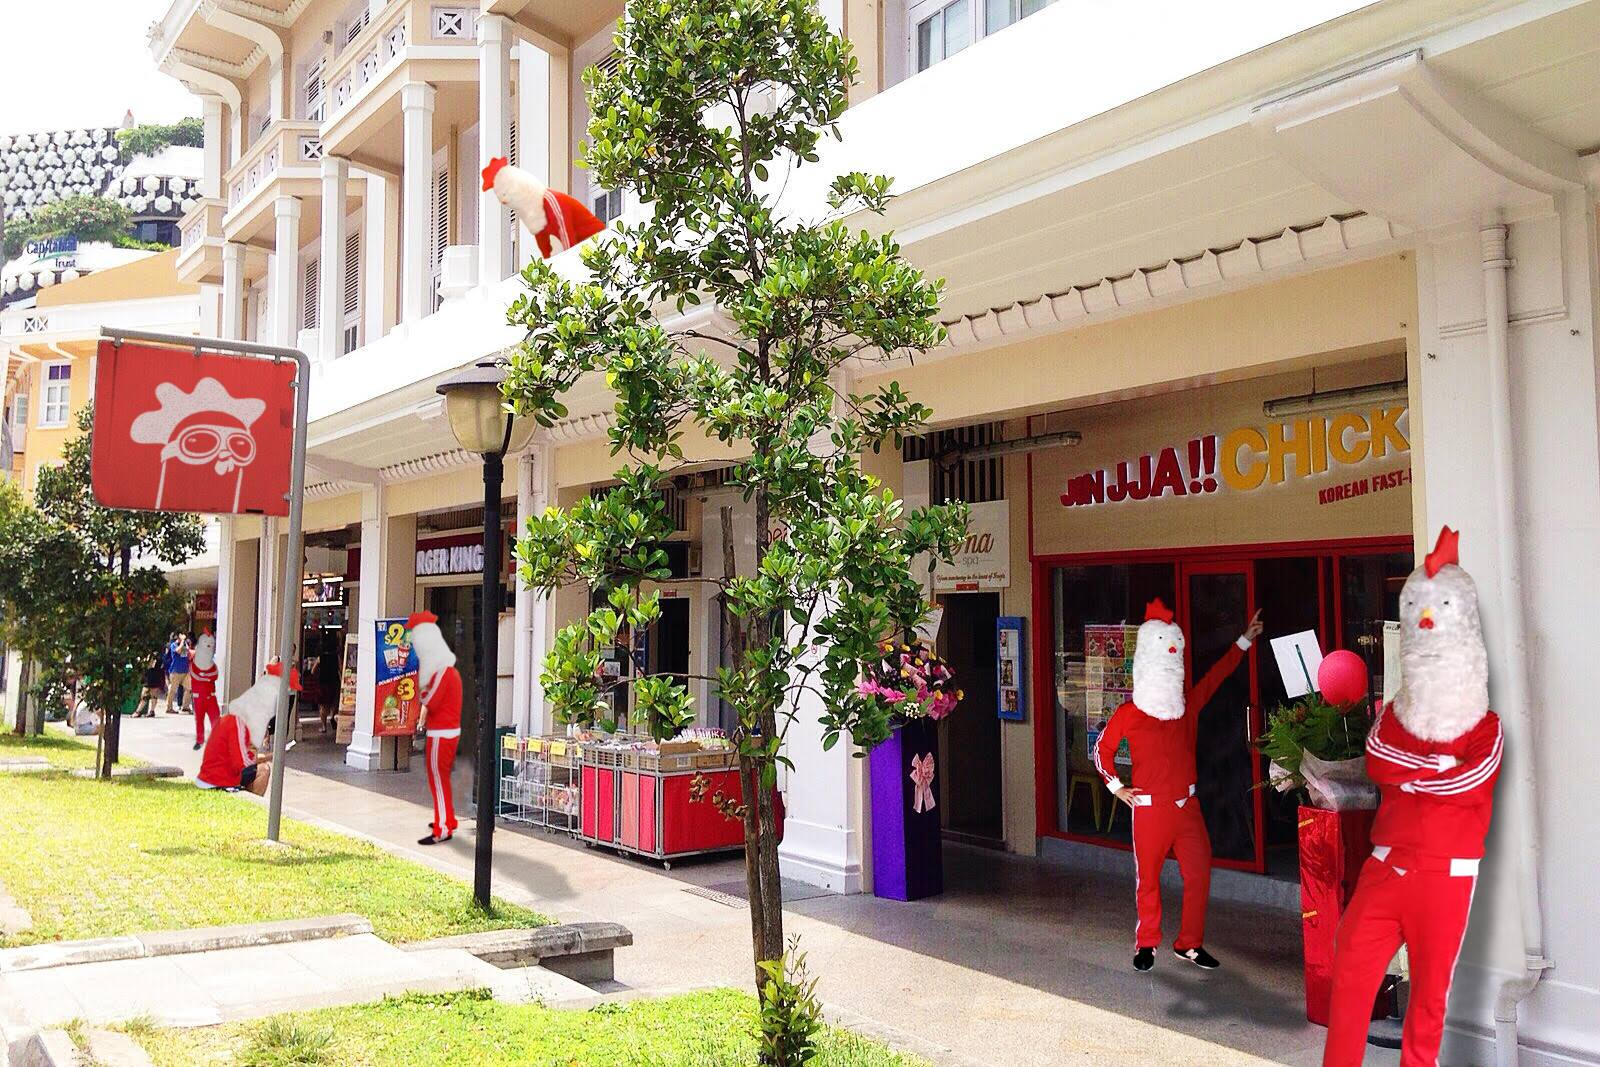 Searching high and low for our Bugis outlet? We are located opposite Bugis Junction, along Bugis Village!